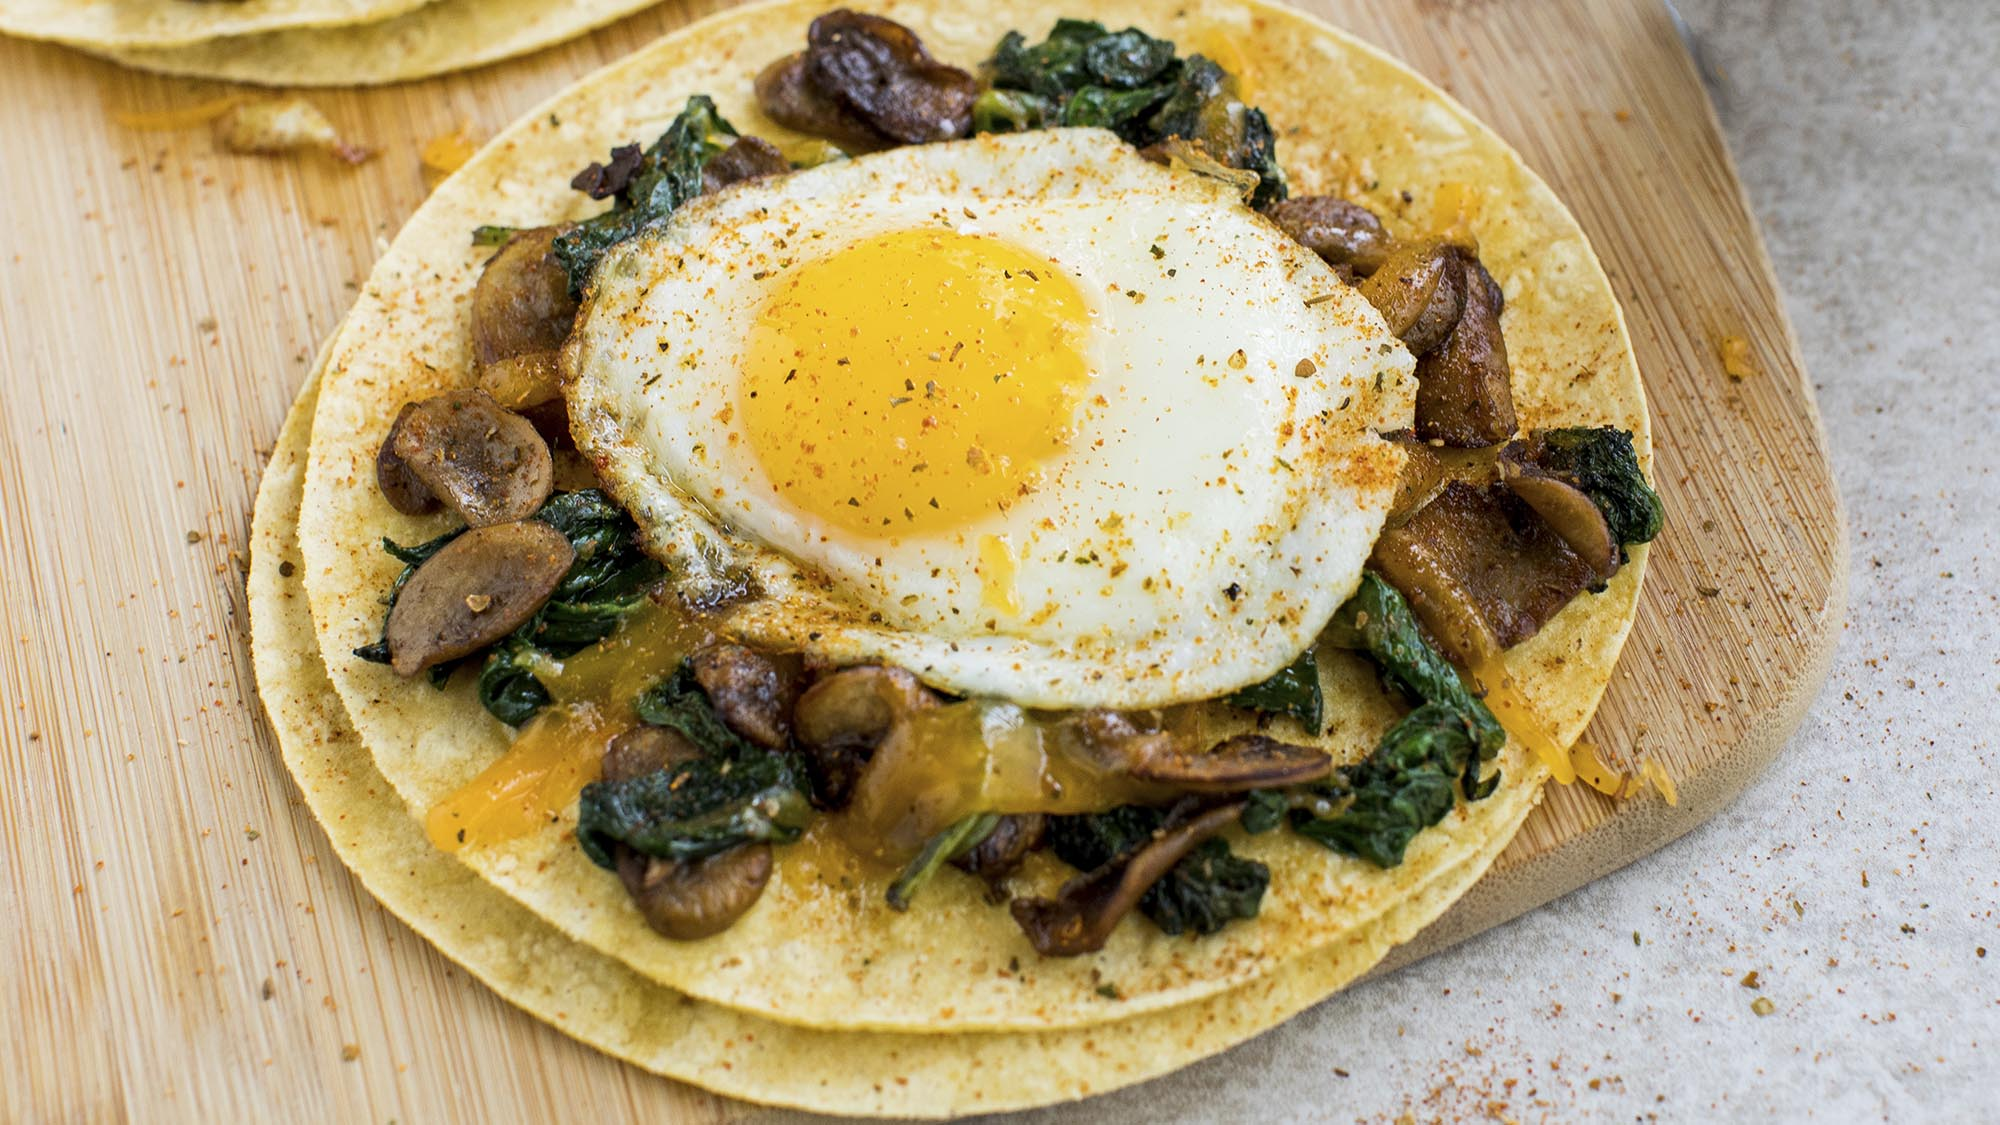 garden_herb_veggie_and_egg_breakfast_tacos_2000x1125.jpg